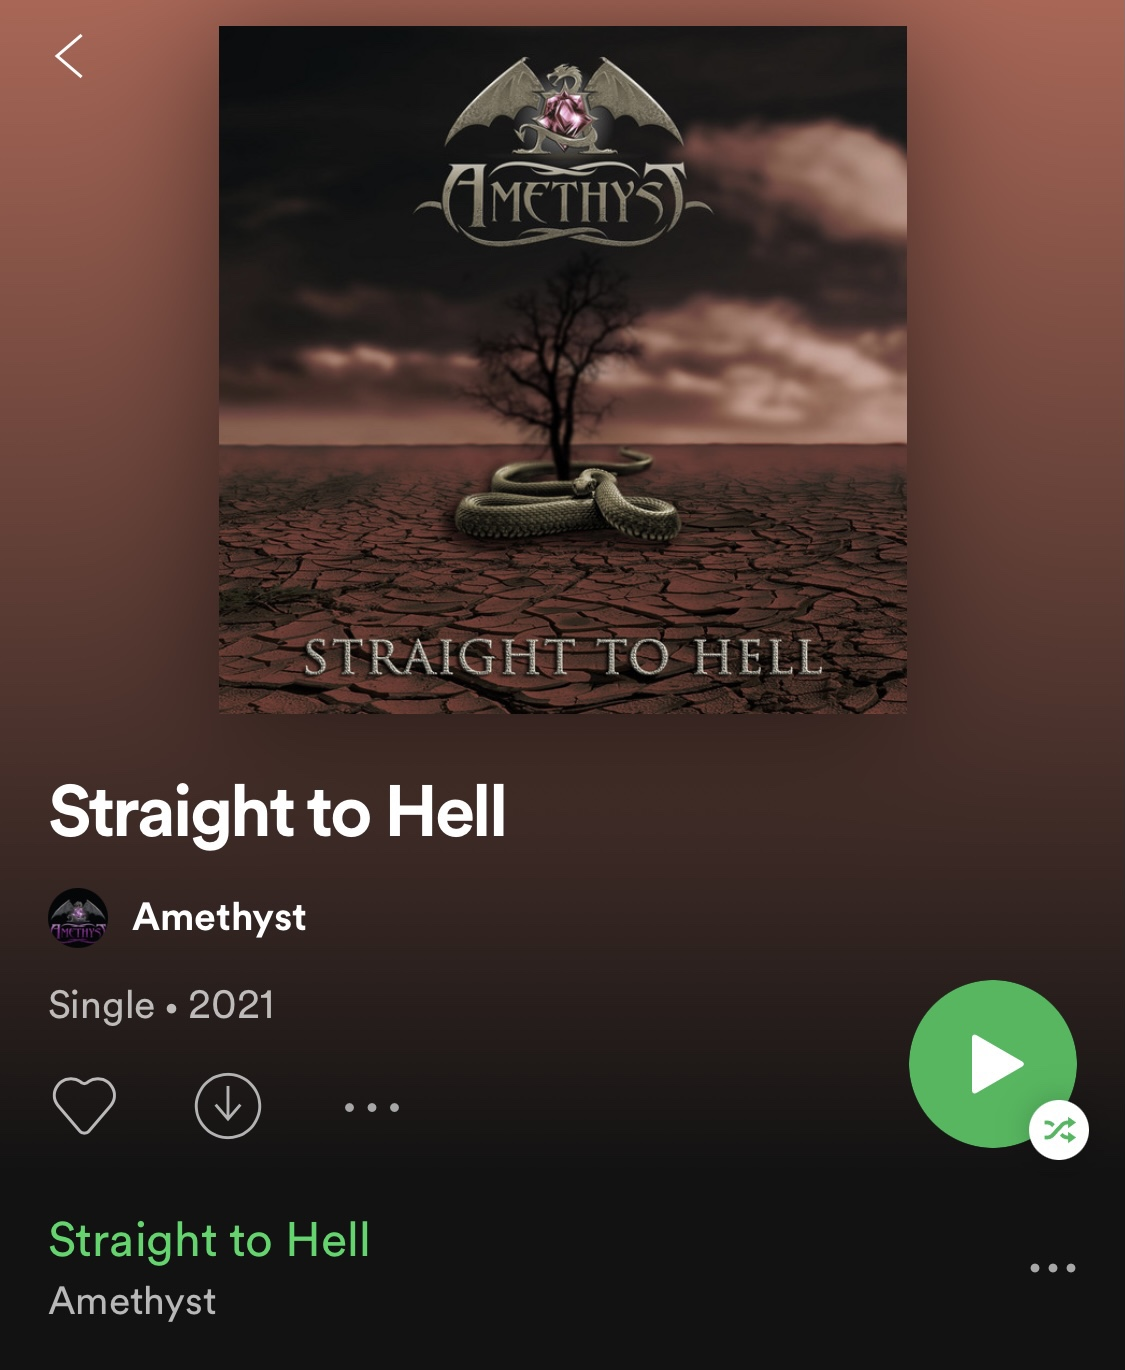 Straight to hell now available in Spotify